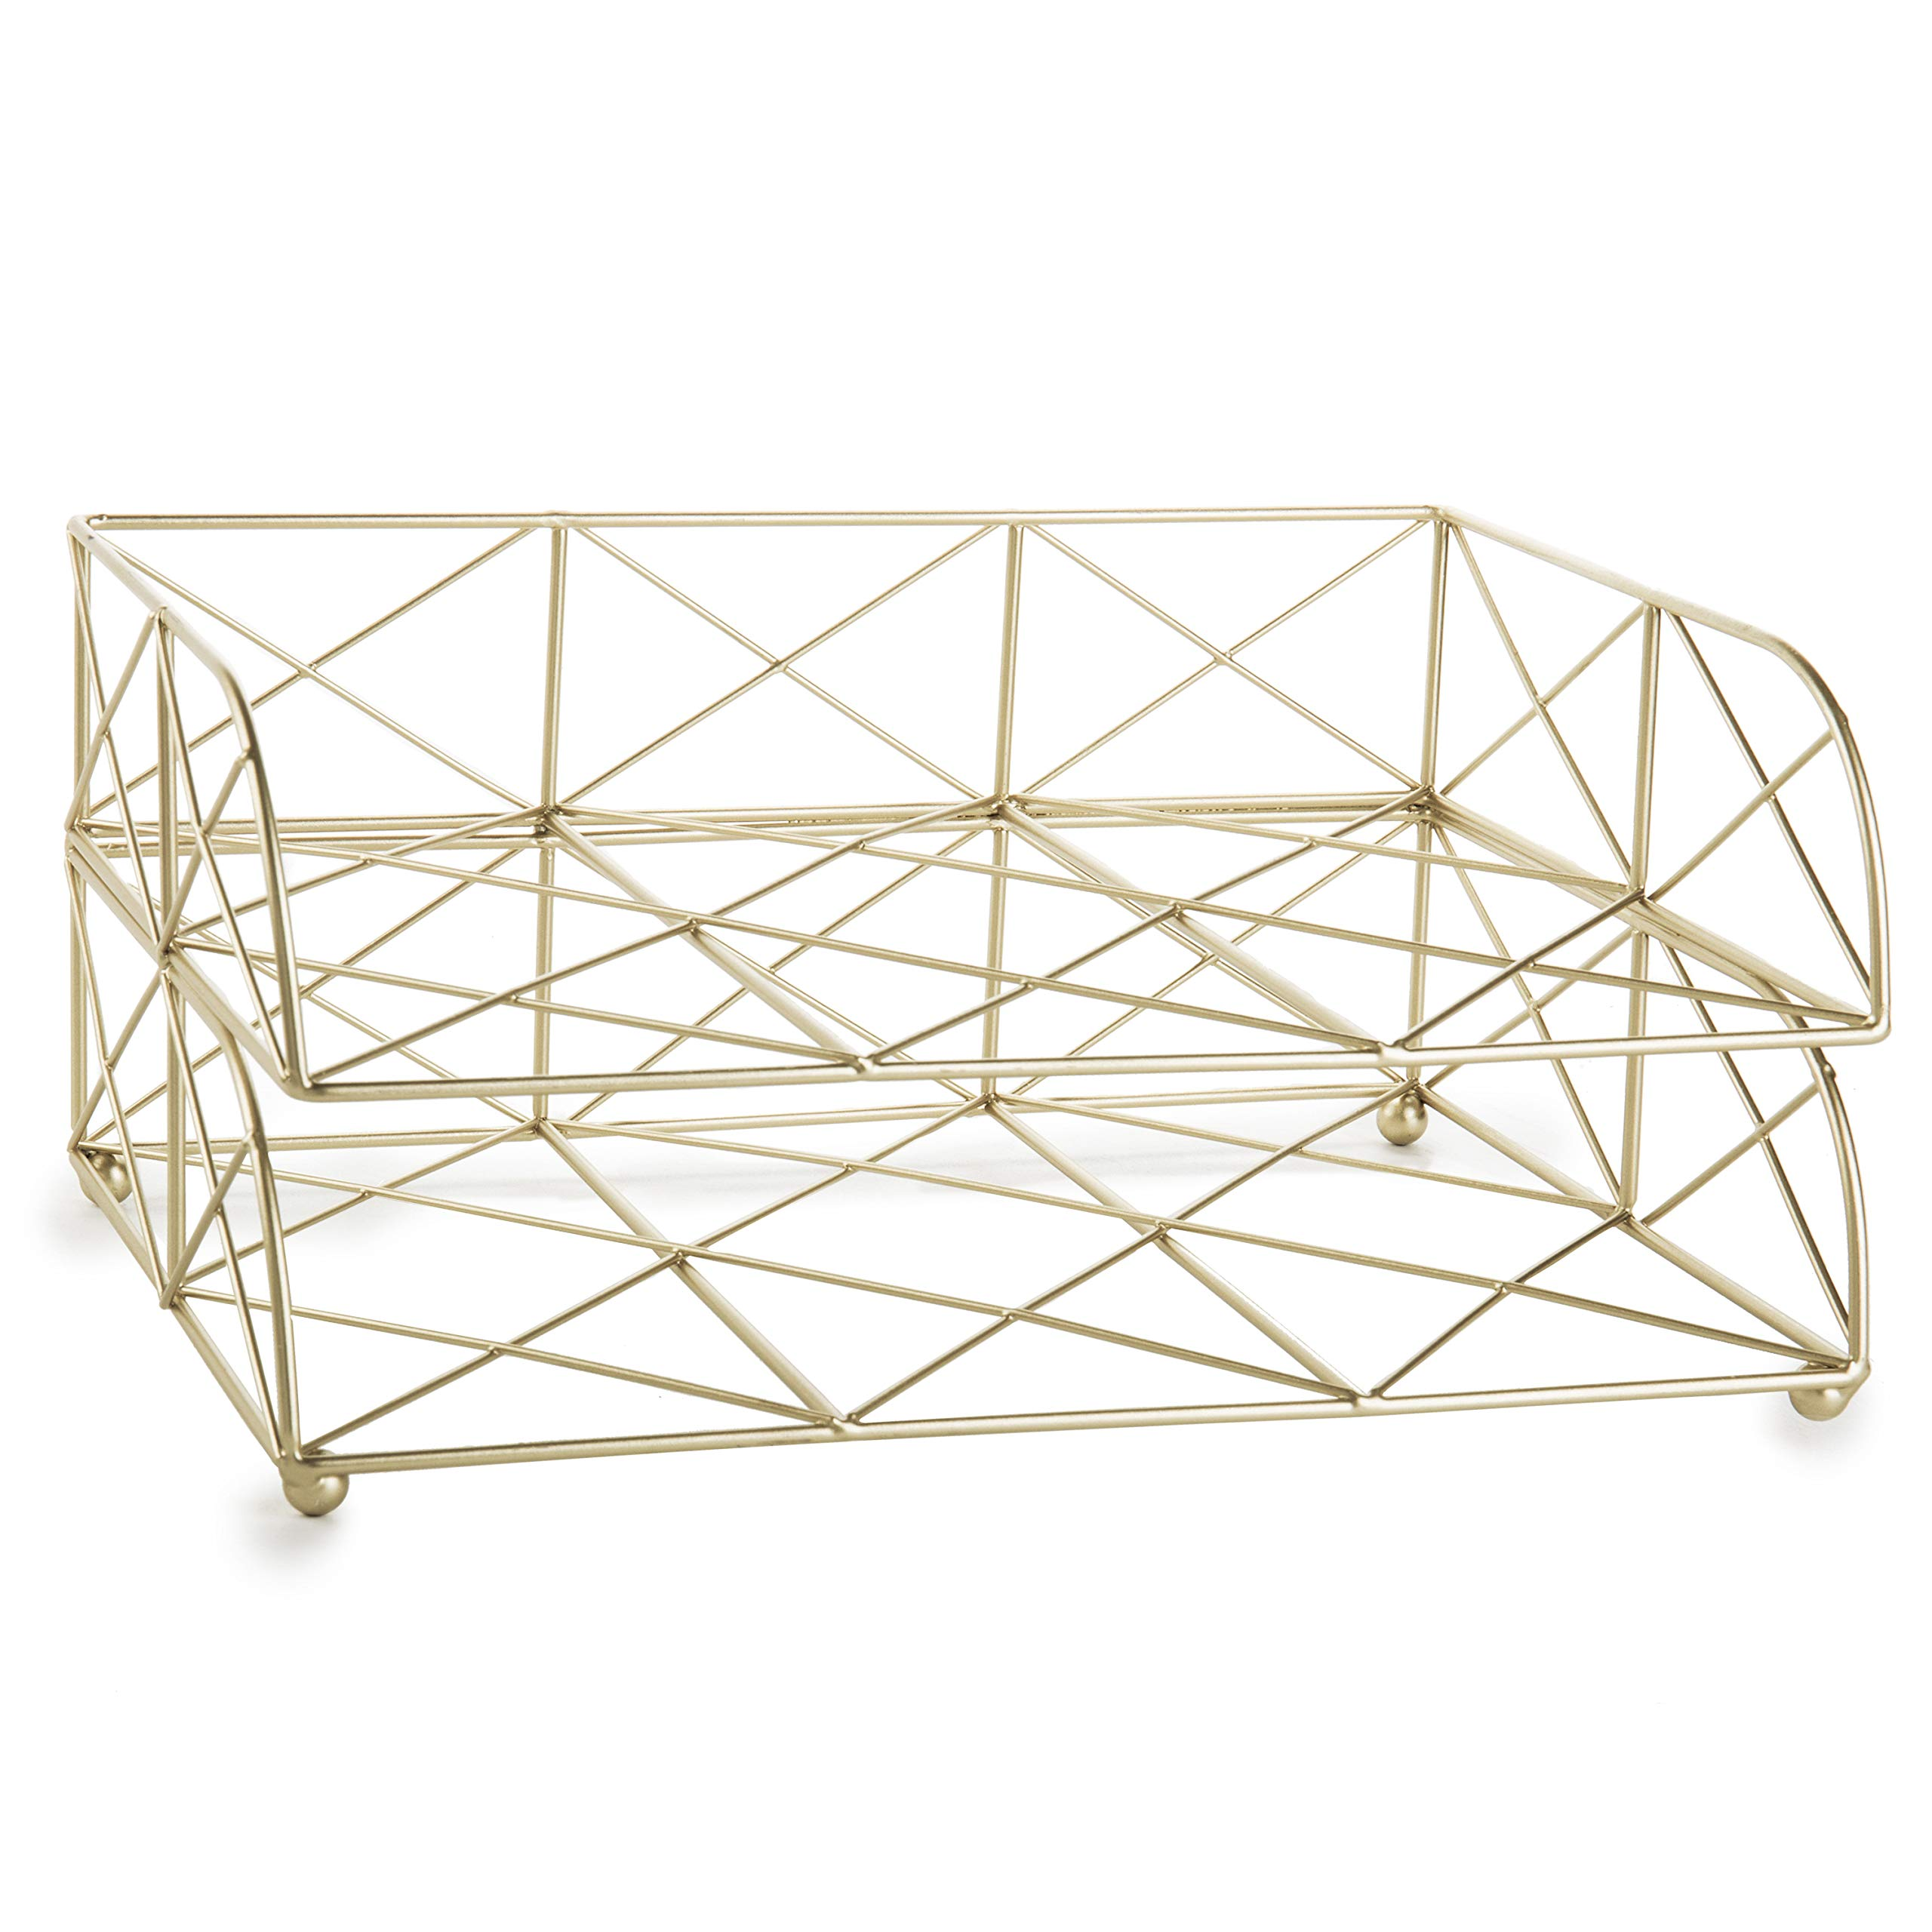 MyGift 2-Tier Geometric Light Gold-Tone Metal Desktop Stacked Letter Tray by MyGift (Image #6)